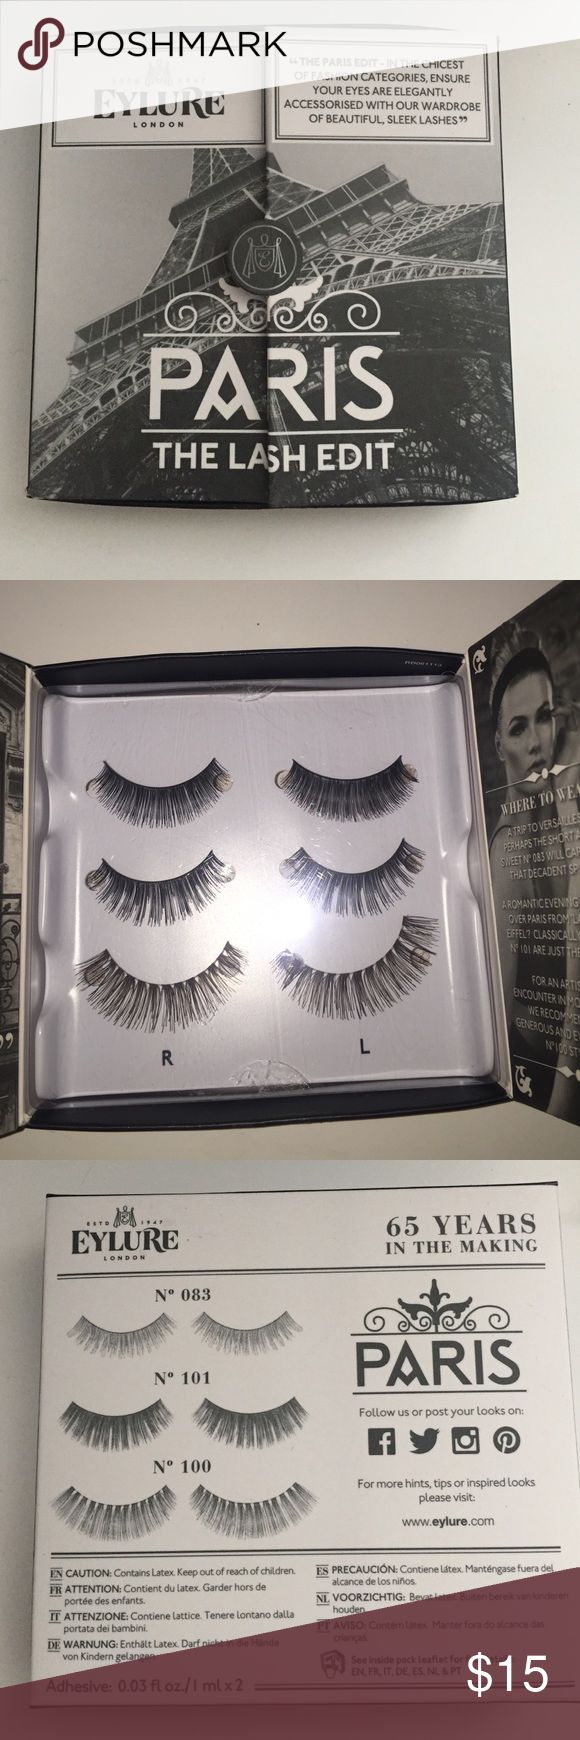 Eyelure Lashes Brand new never used. Other